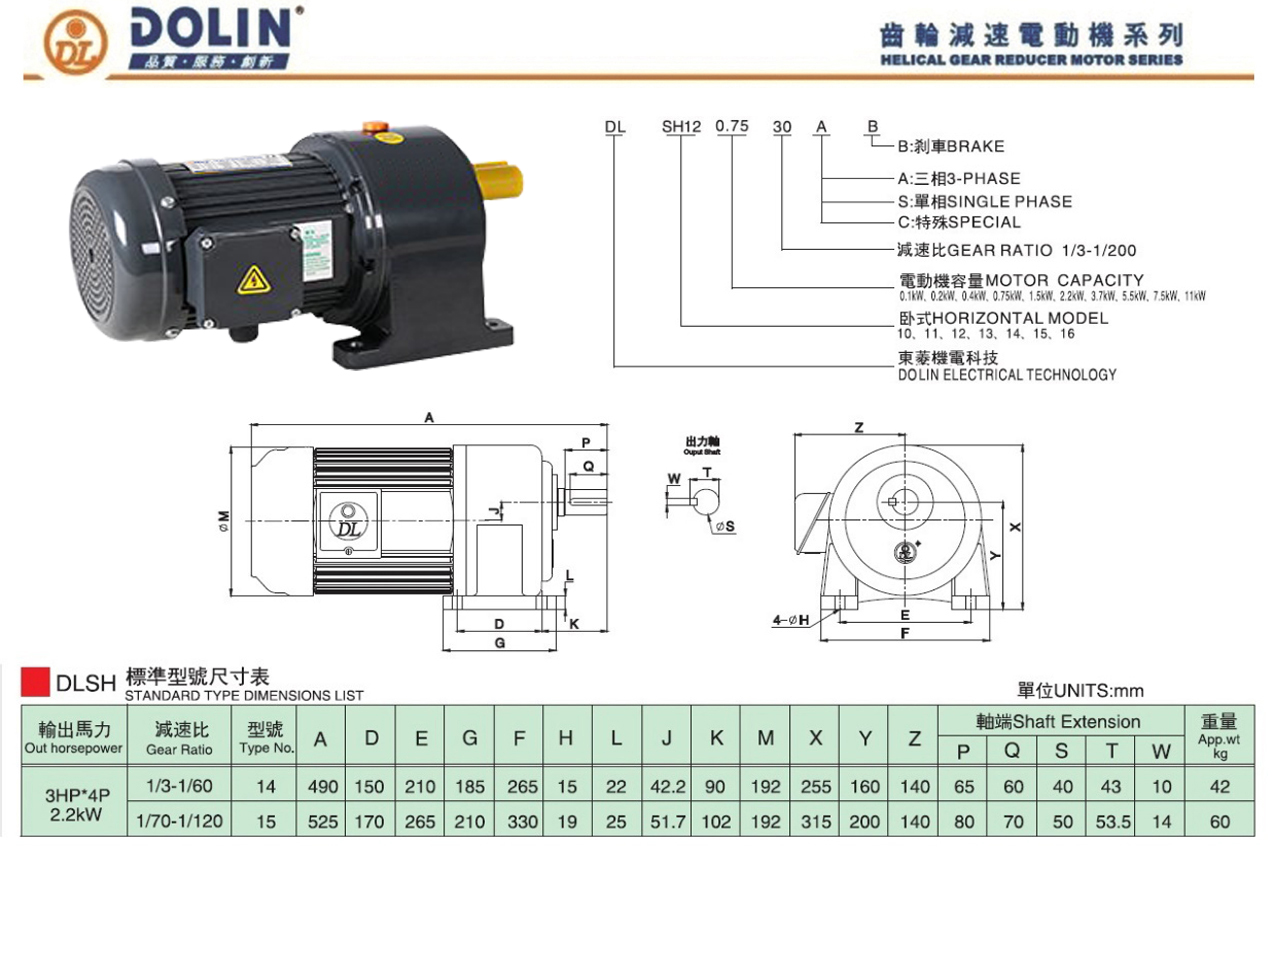 2 2kw gear motor catalogues